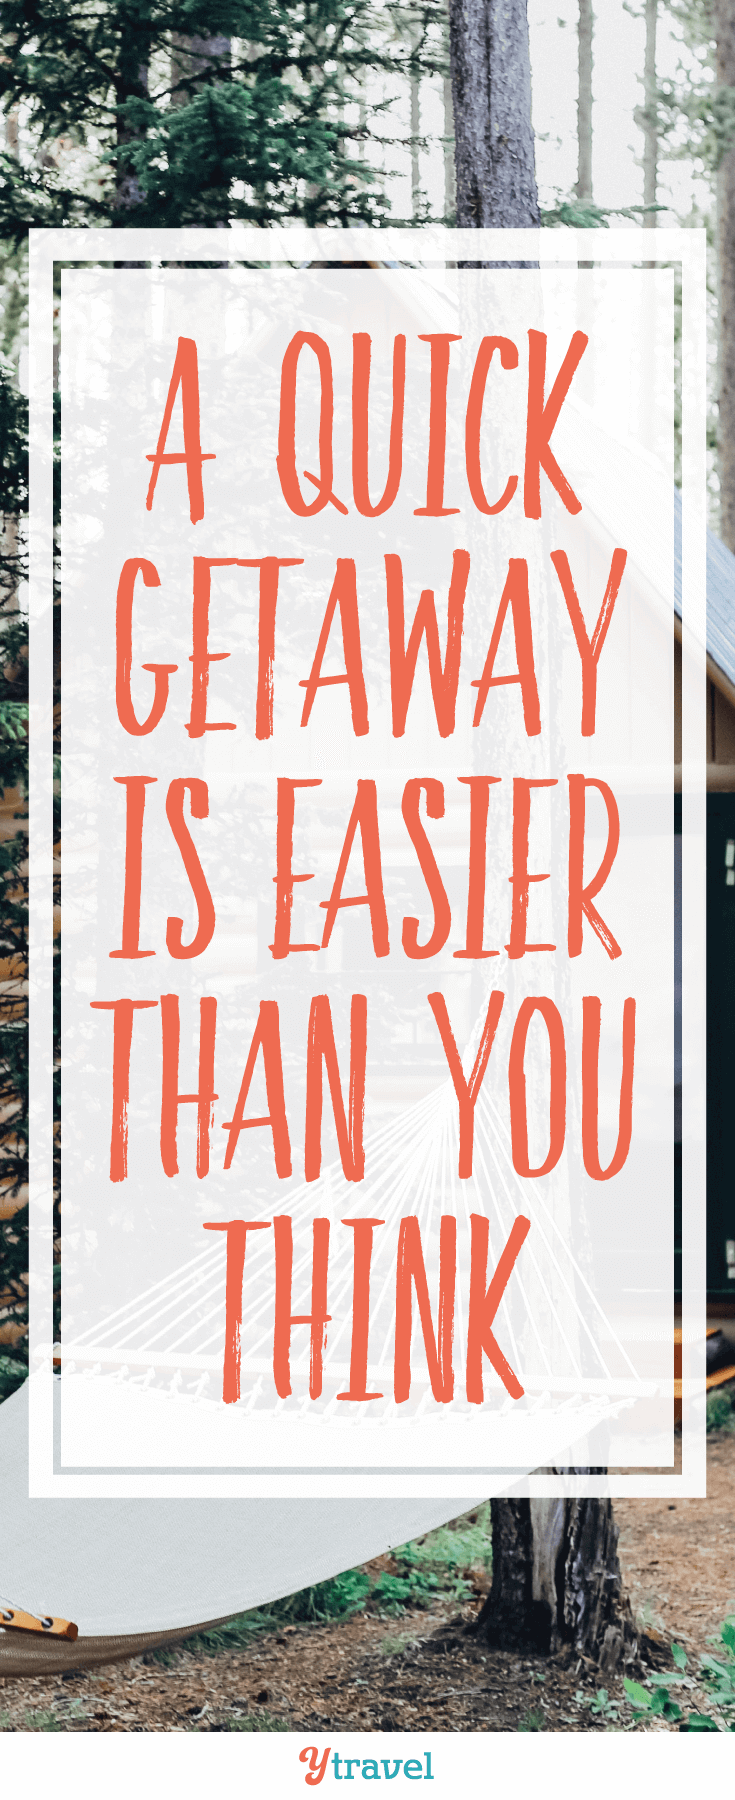 Is a weekend getaway on your mind? Worried you don't have the time? Check out how a quick getaway is easier than you think.